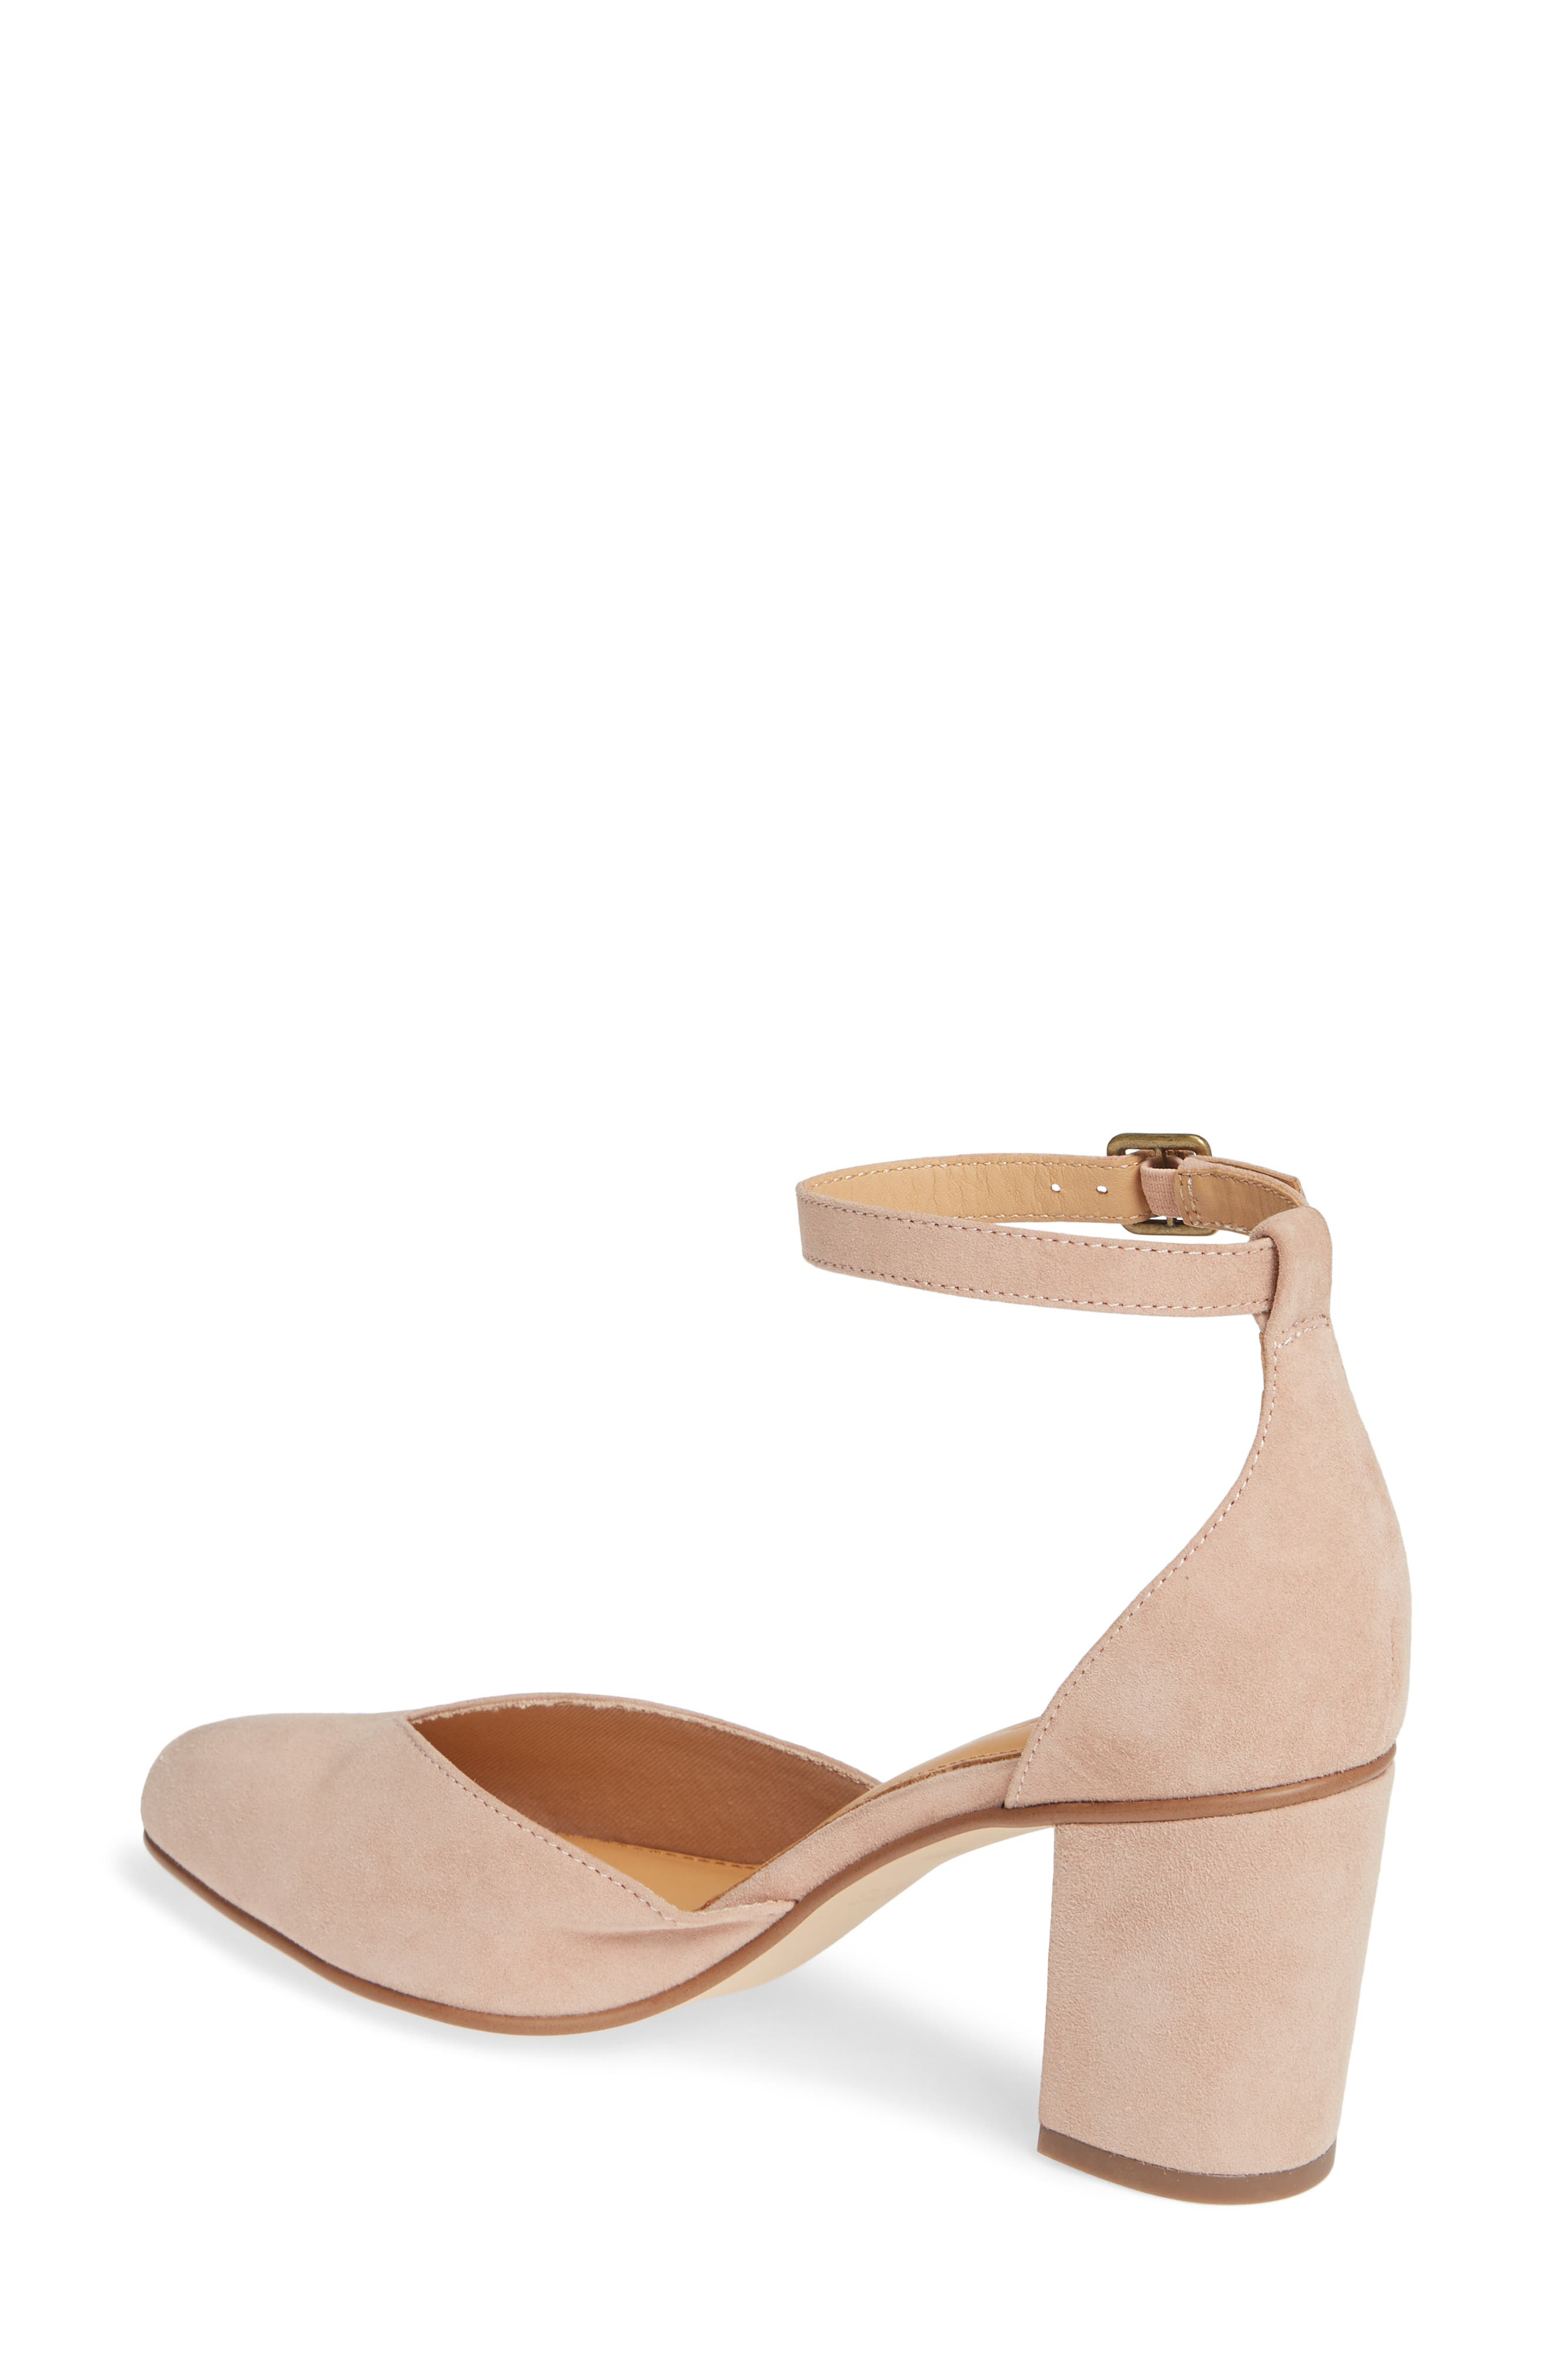 SOLUDOS,                             Adele Halo Strap Pump,                             Alternate thumbnail 2, color,                             689